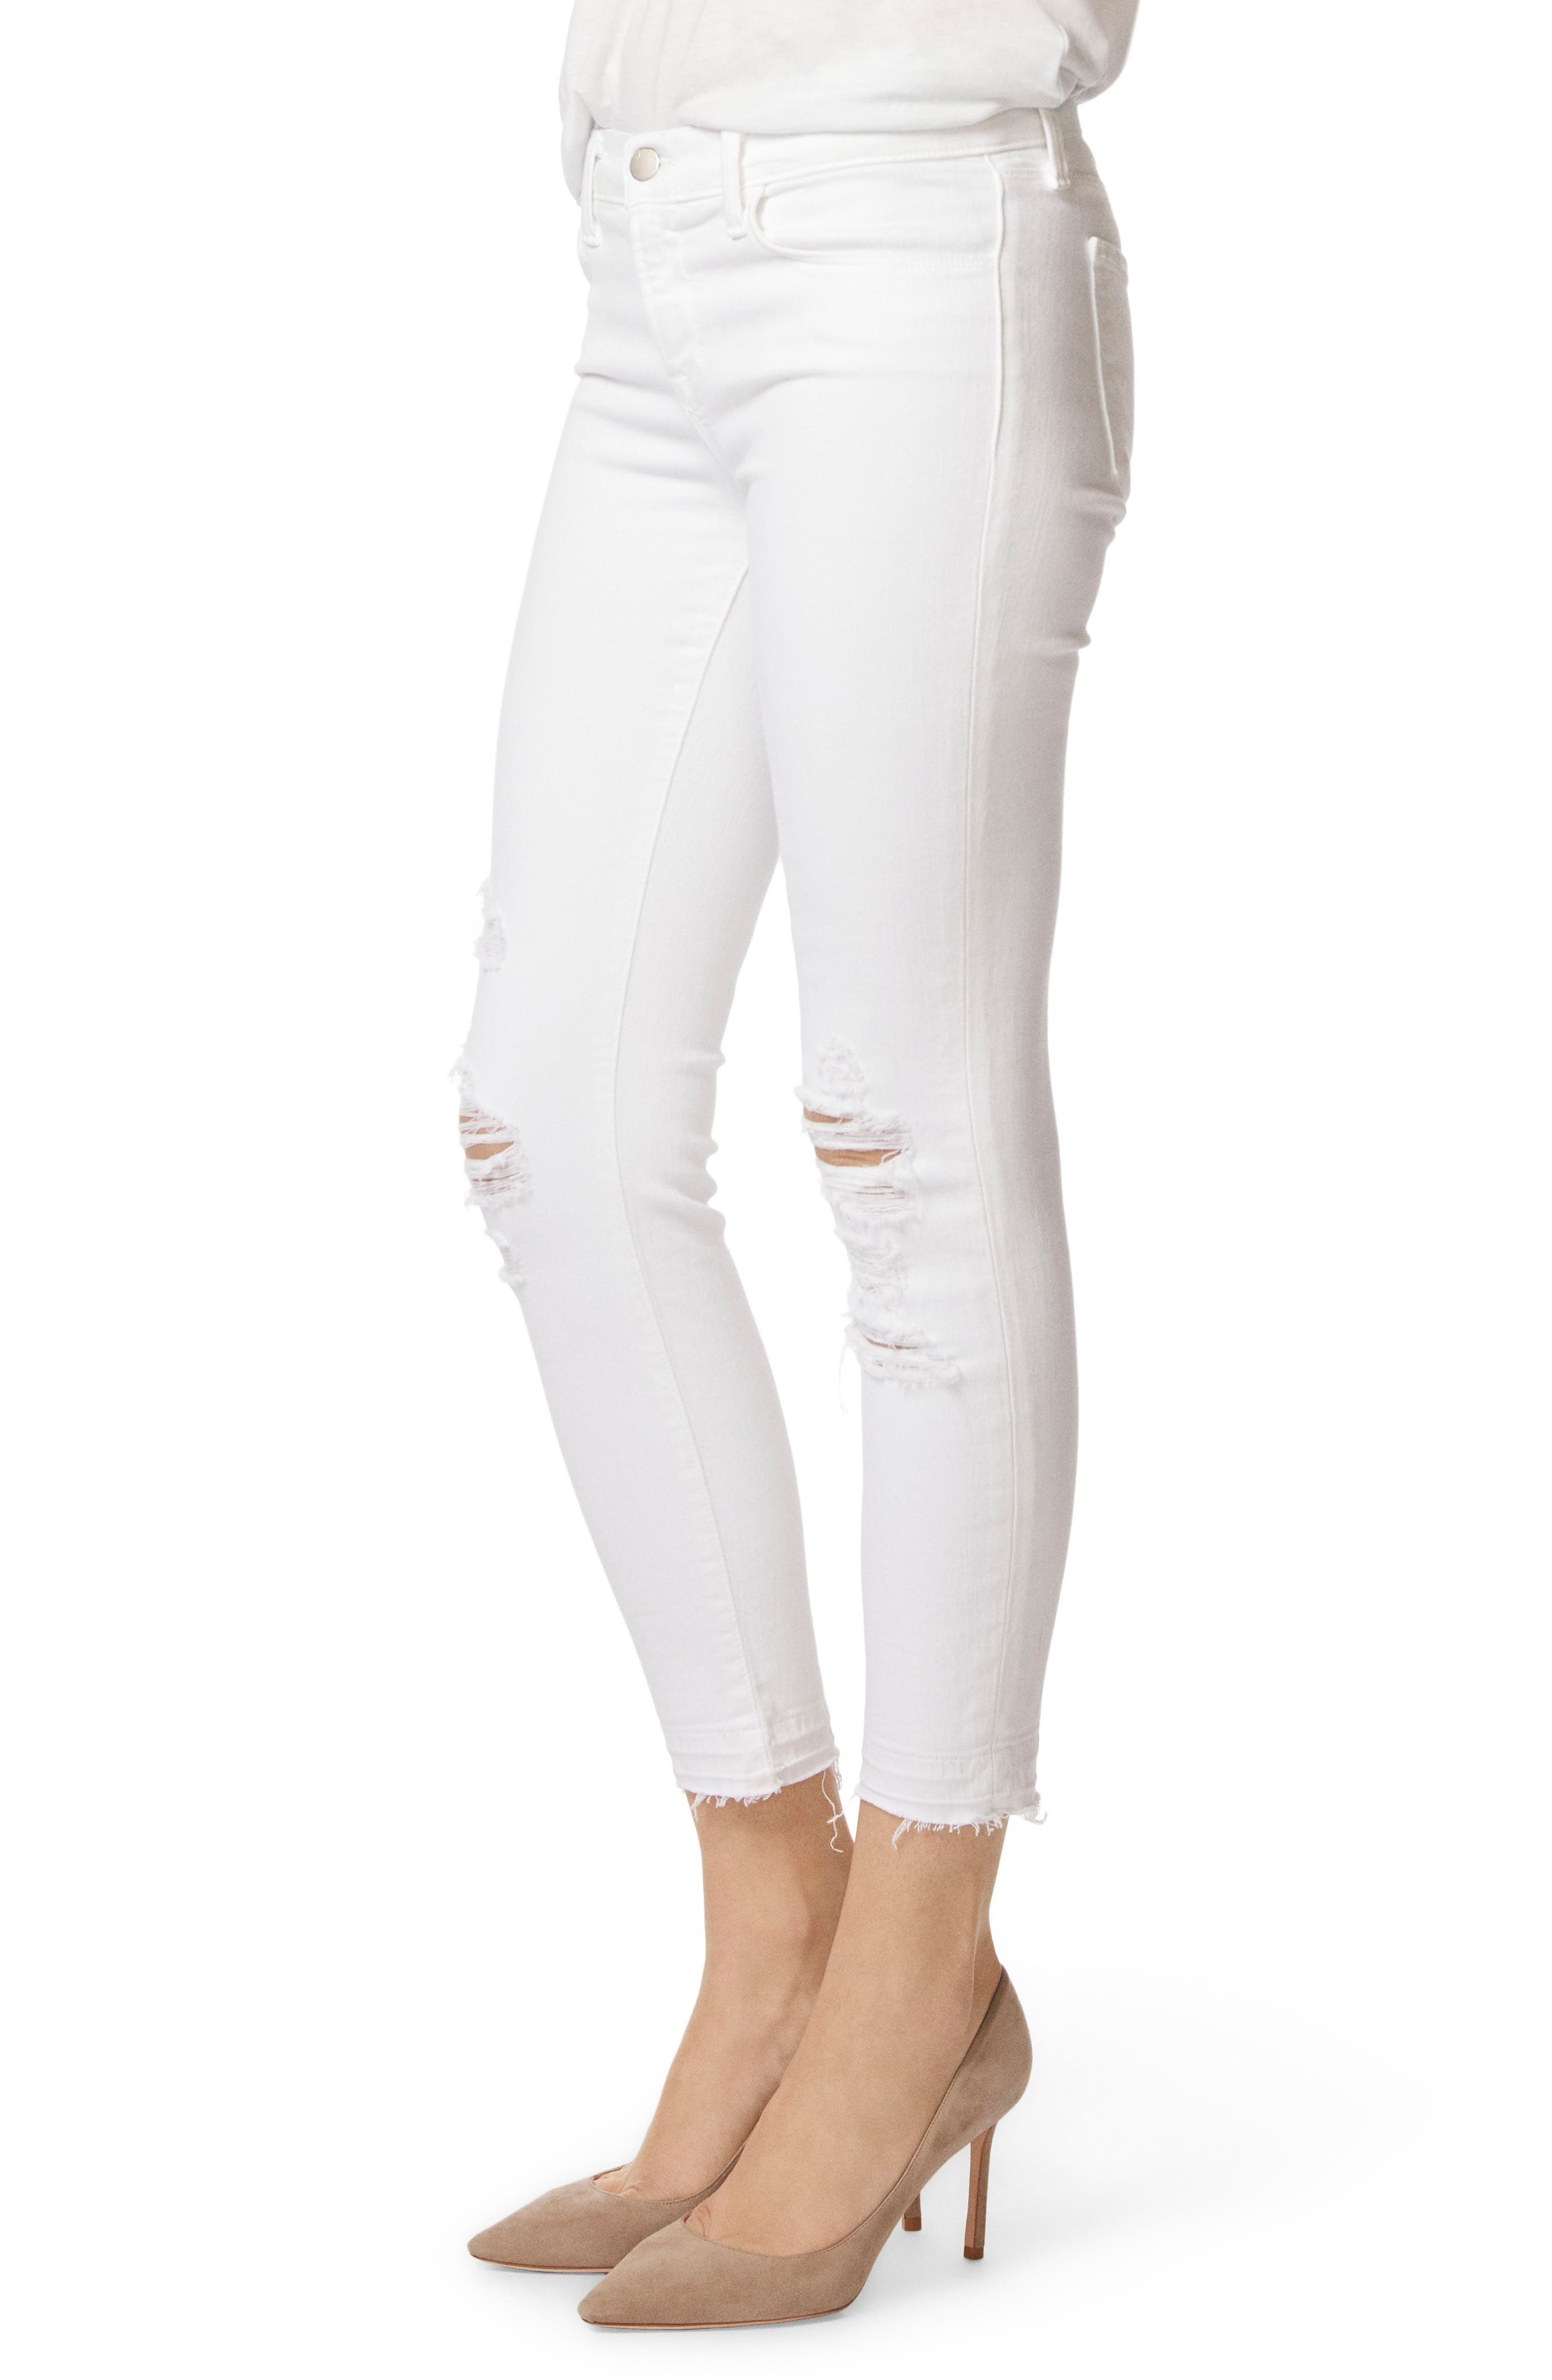 J BRAND, 9326 Low Rise Crop Skinny Jeans, Alternate thumbnail 4, color, DEMENTED WHITE DESTRUCTED